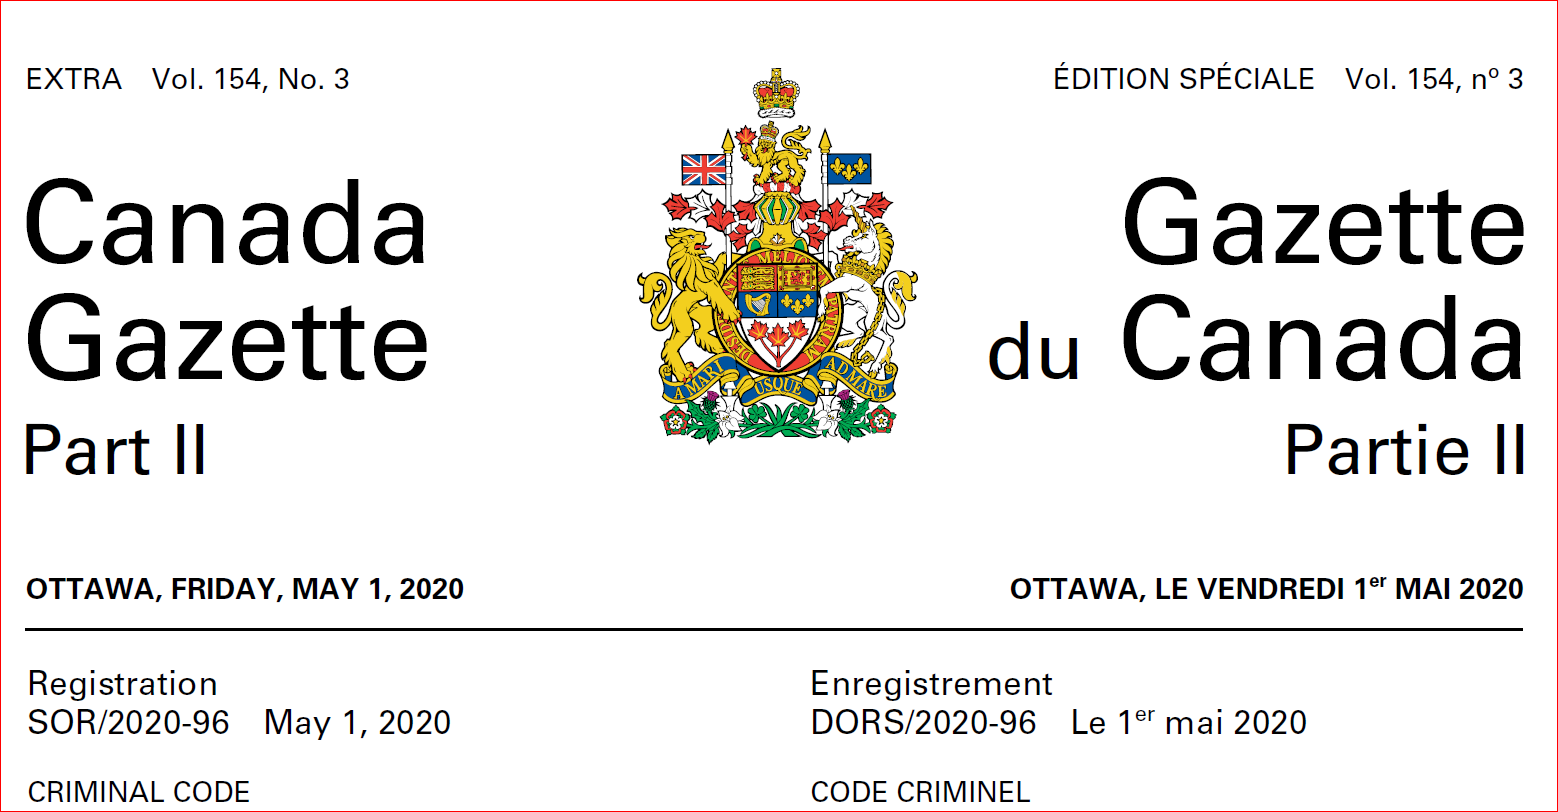 CANADA GAZETTE PART II – OTTAWA, FRIDAY, MAY 1, 2020 – EXTRA VOL. 154, NO. 3 Firearms and Other Weapons, Components and Parts of Weapons, Accessories, Cartridge Magazines, Ammunition and Projectiles as Prohibited, Restricted or Non-Restricted . Regulations Amending the Regulations Prescribing Certain Firearms and Other Weapons, Components and Parts of Weapons, Accessories, Cartridge Magazines, […]